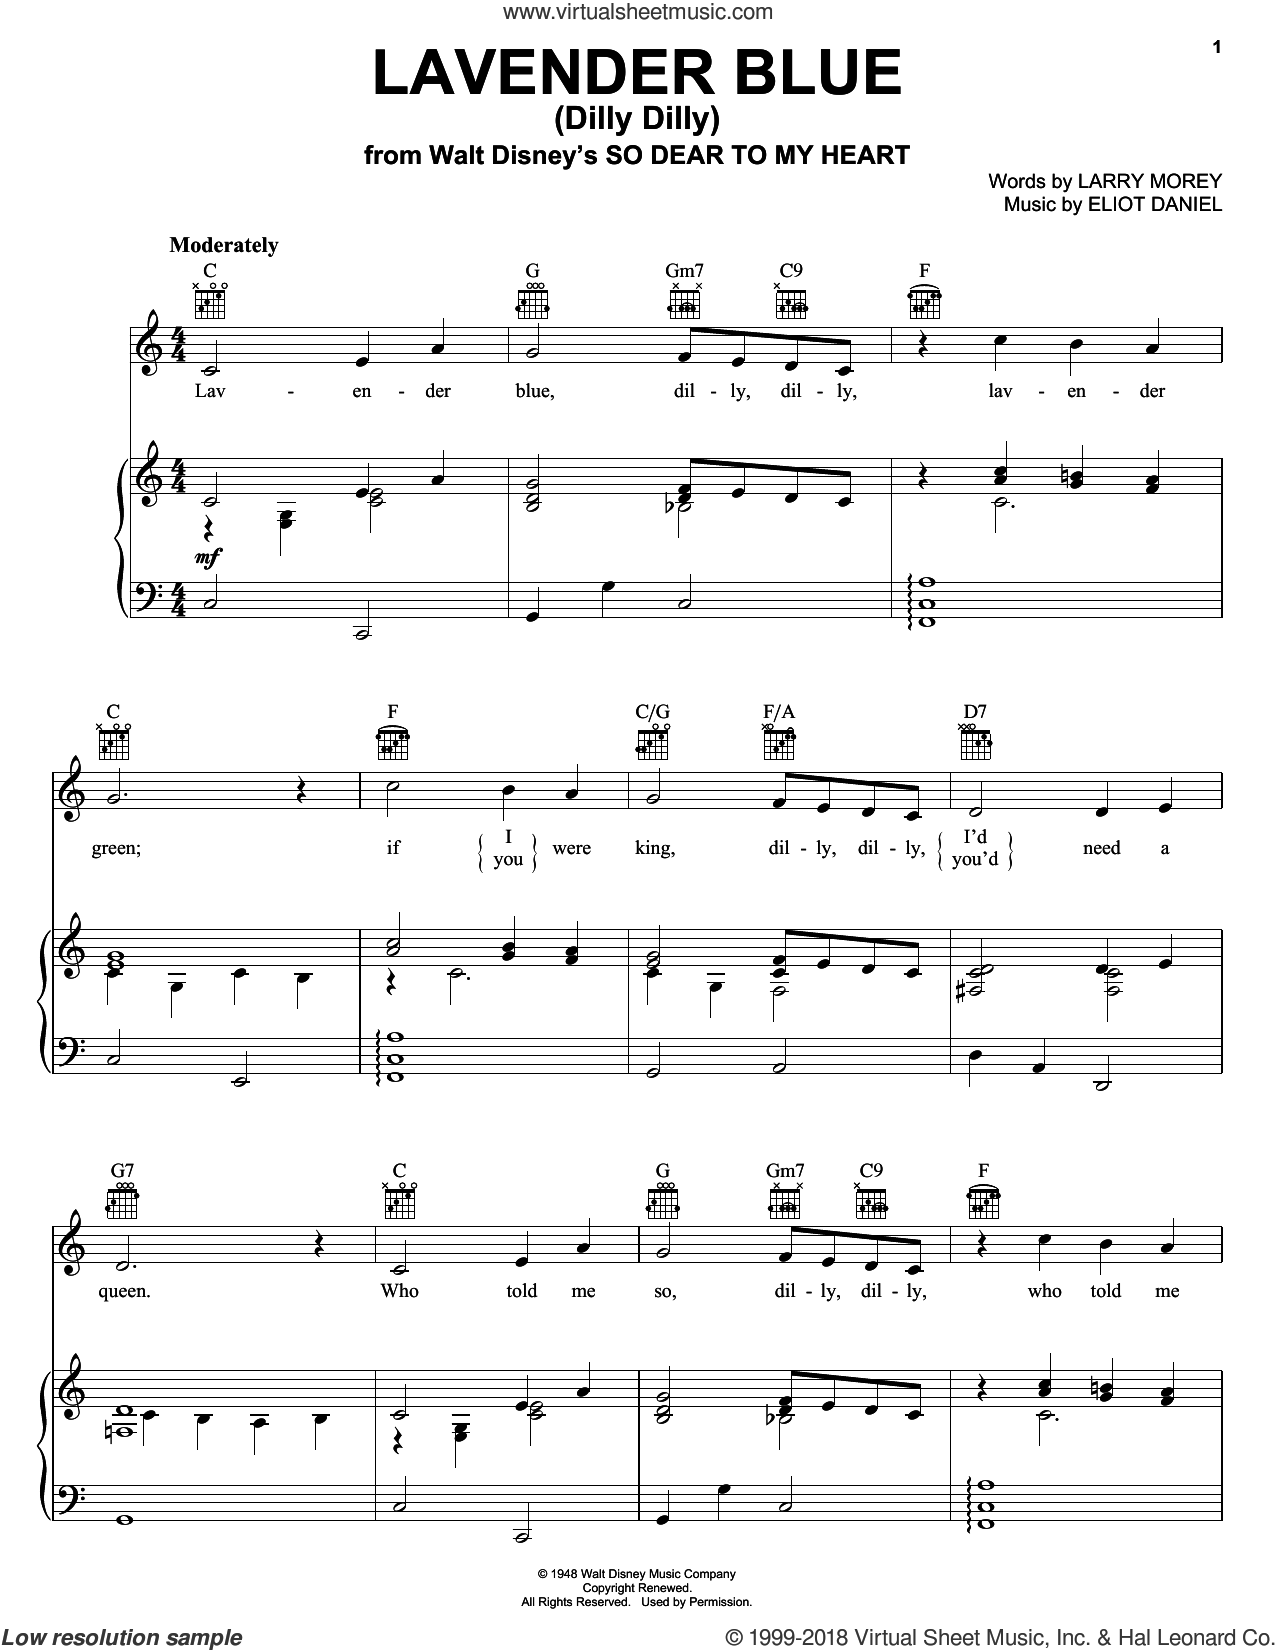 Lavender Blue (Dilly Dilly) sheet music for voice, piano or guitar by Larry Morey